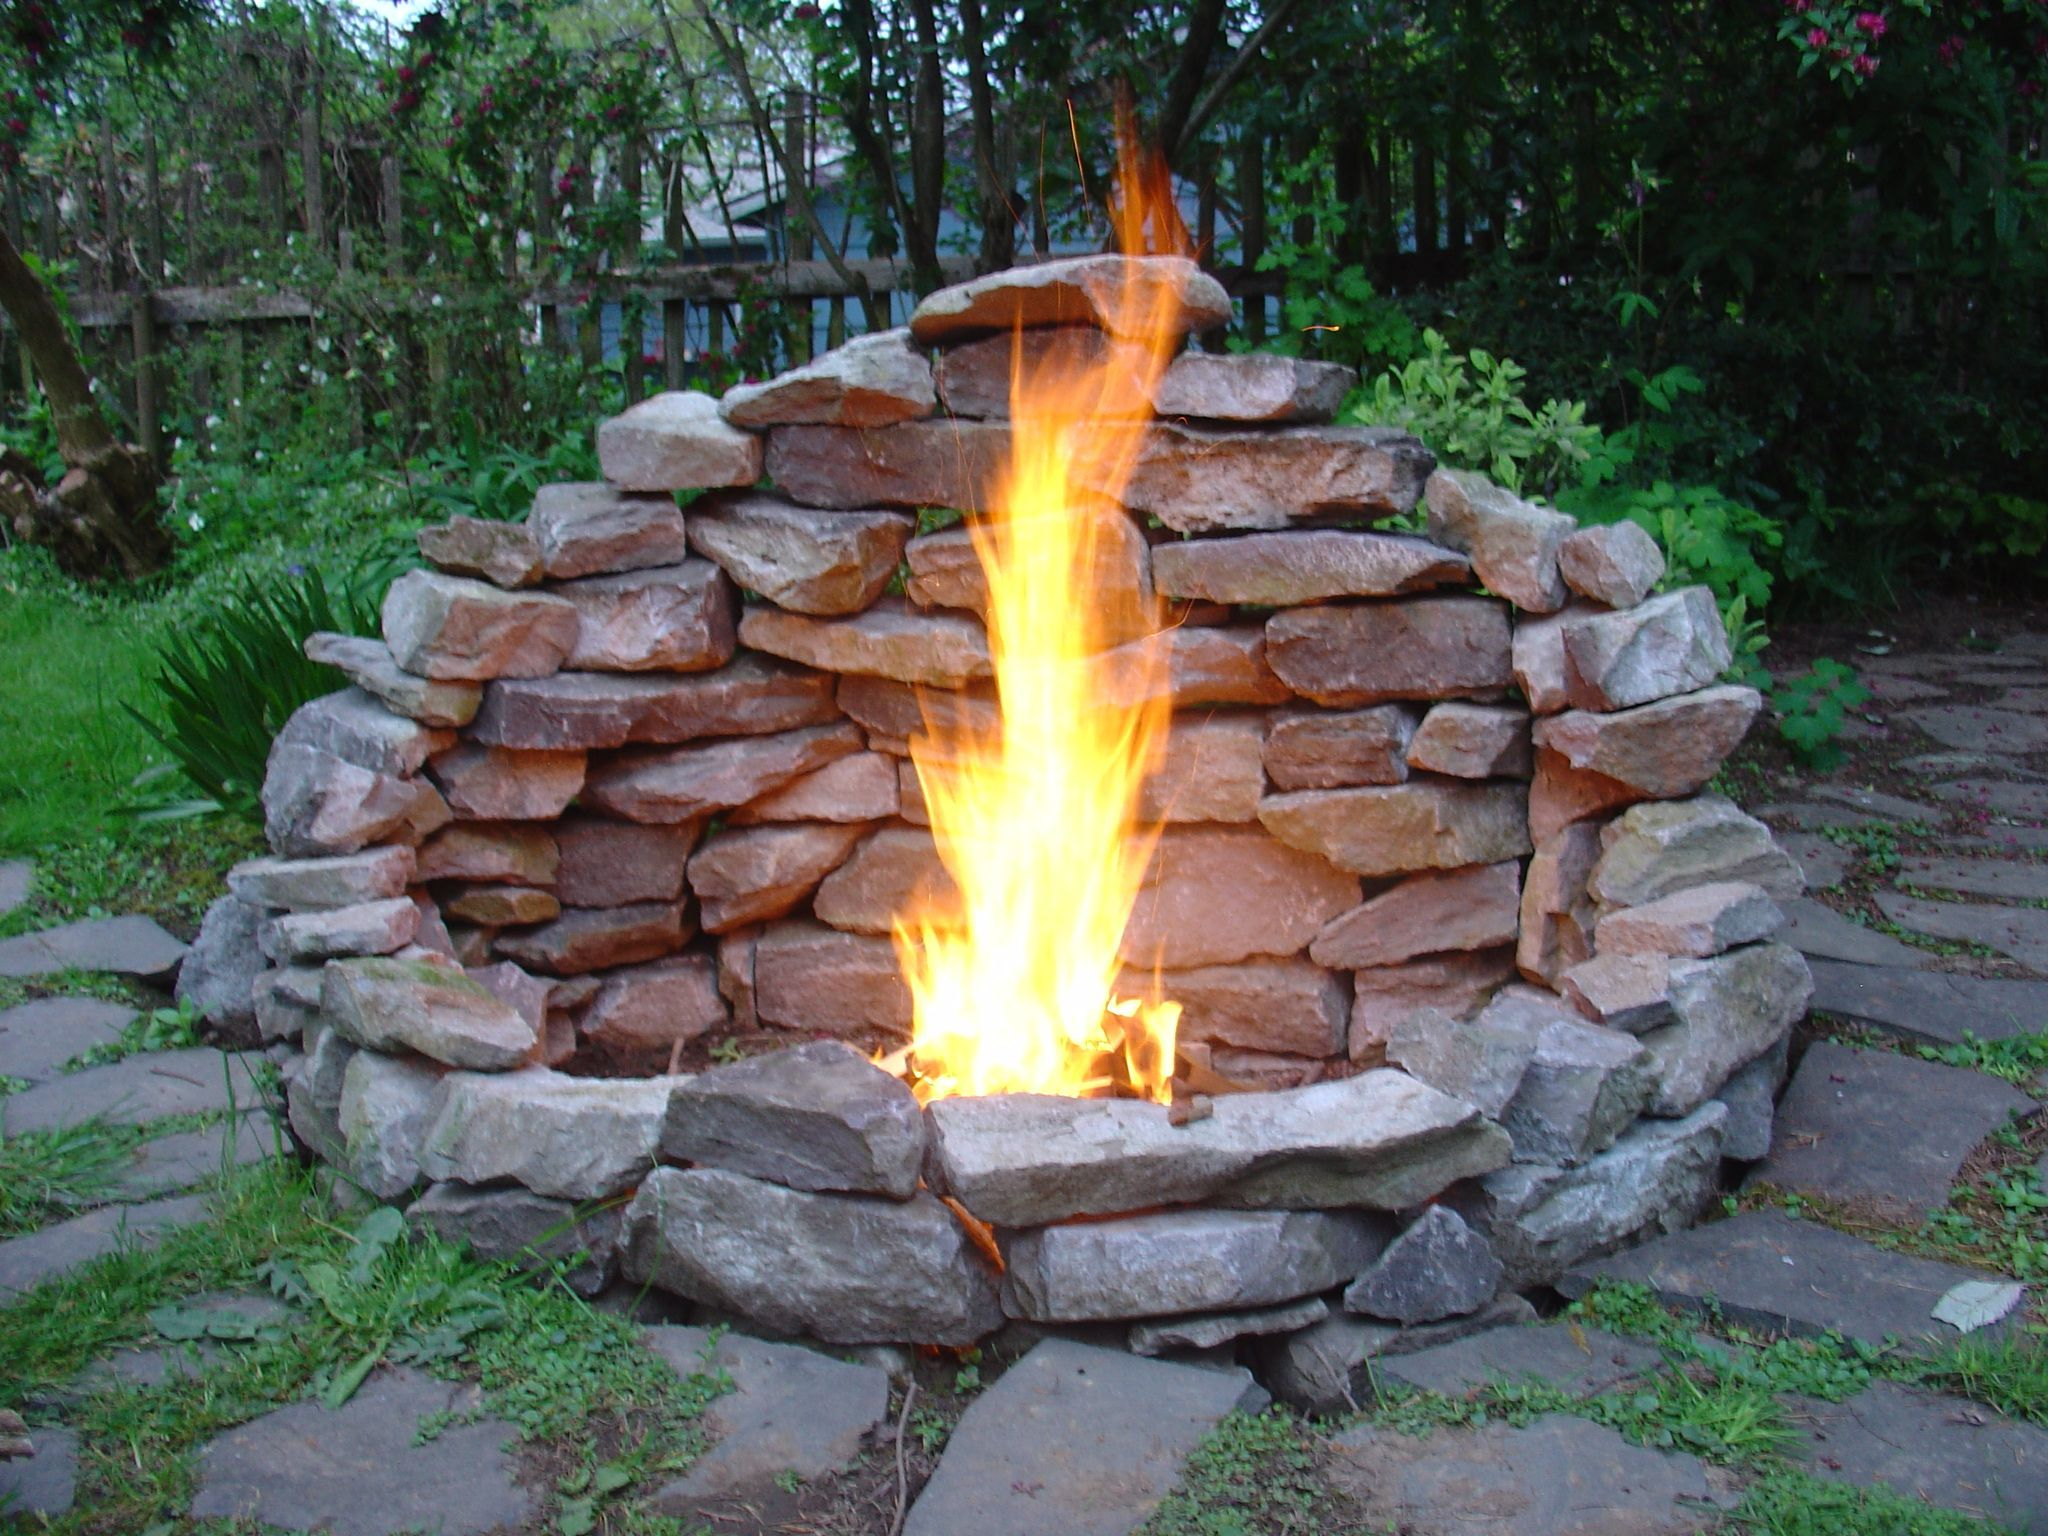 Unique Fire Pit Fireplace Design Rock Fire Pit Hot Tubs Fire Pit Party Night Fire Pit Cover Awesome Flag Outside Fire Pits Fire Pit Backyard Backyard Fireplace